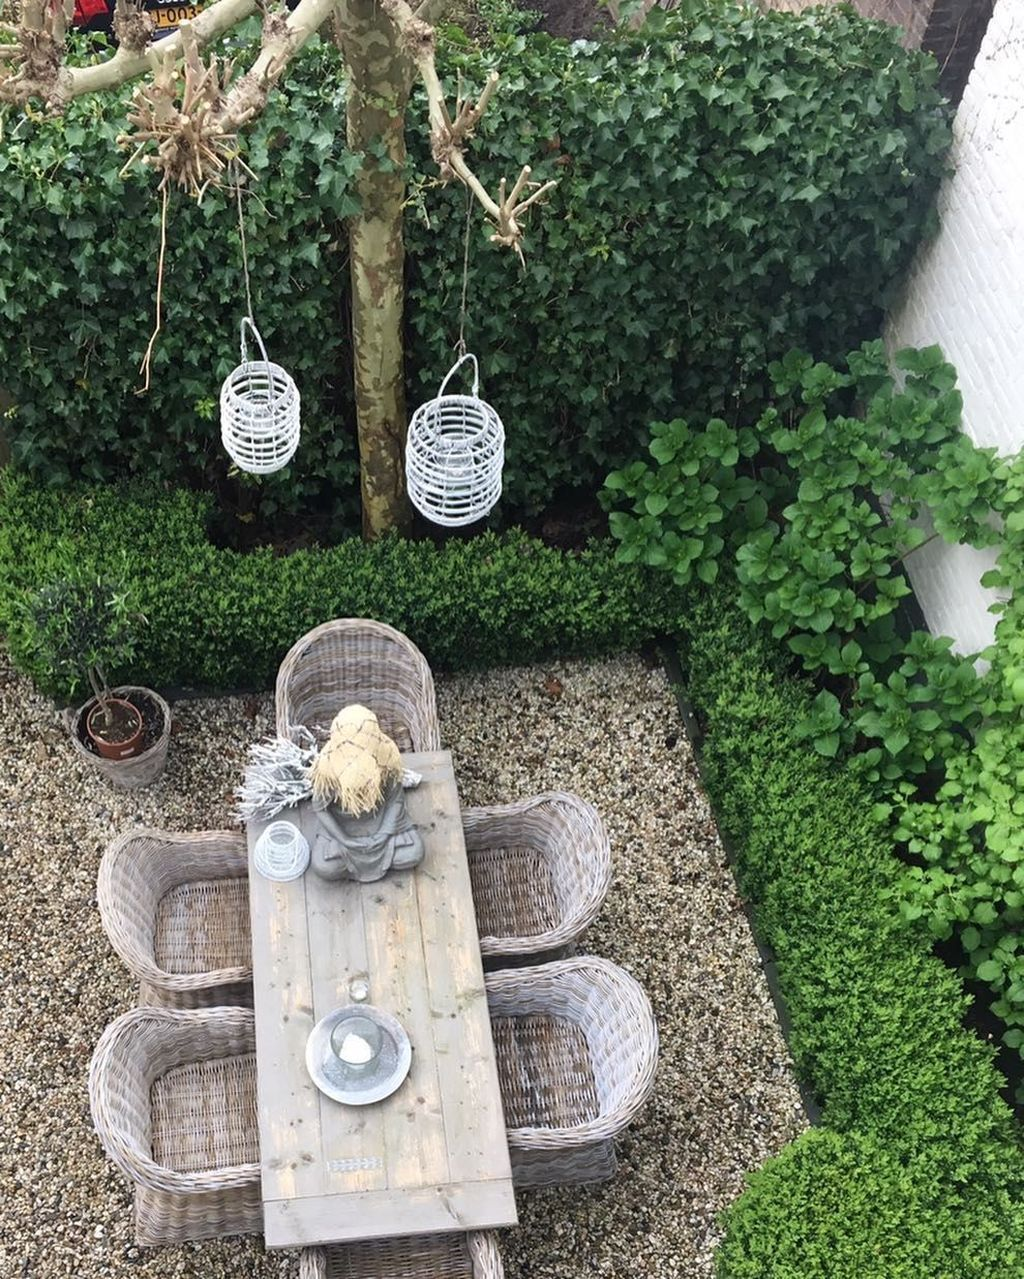 30+ Gorgeous Play Garden Design Ideas For Your Kids is part of Small garden Kids - Small garden design ideas are not easy to find  A small garden design is different from other garden designs  Space […]